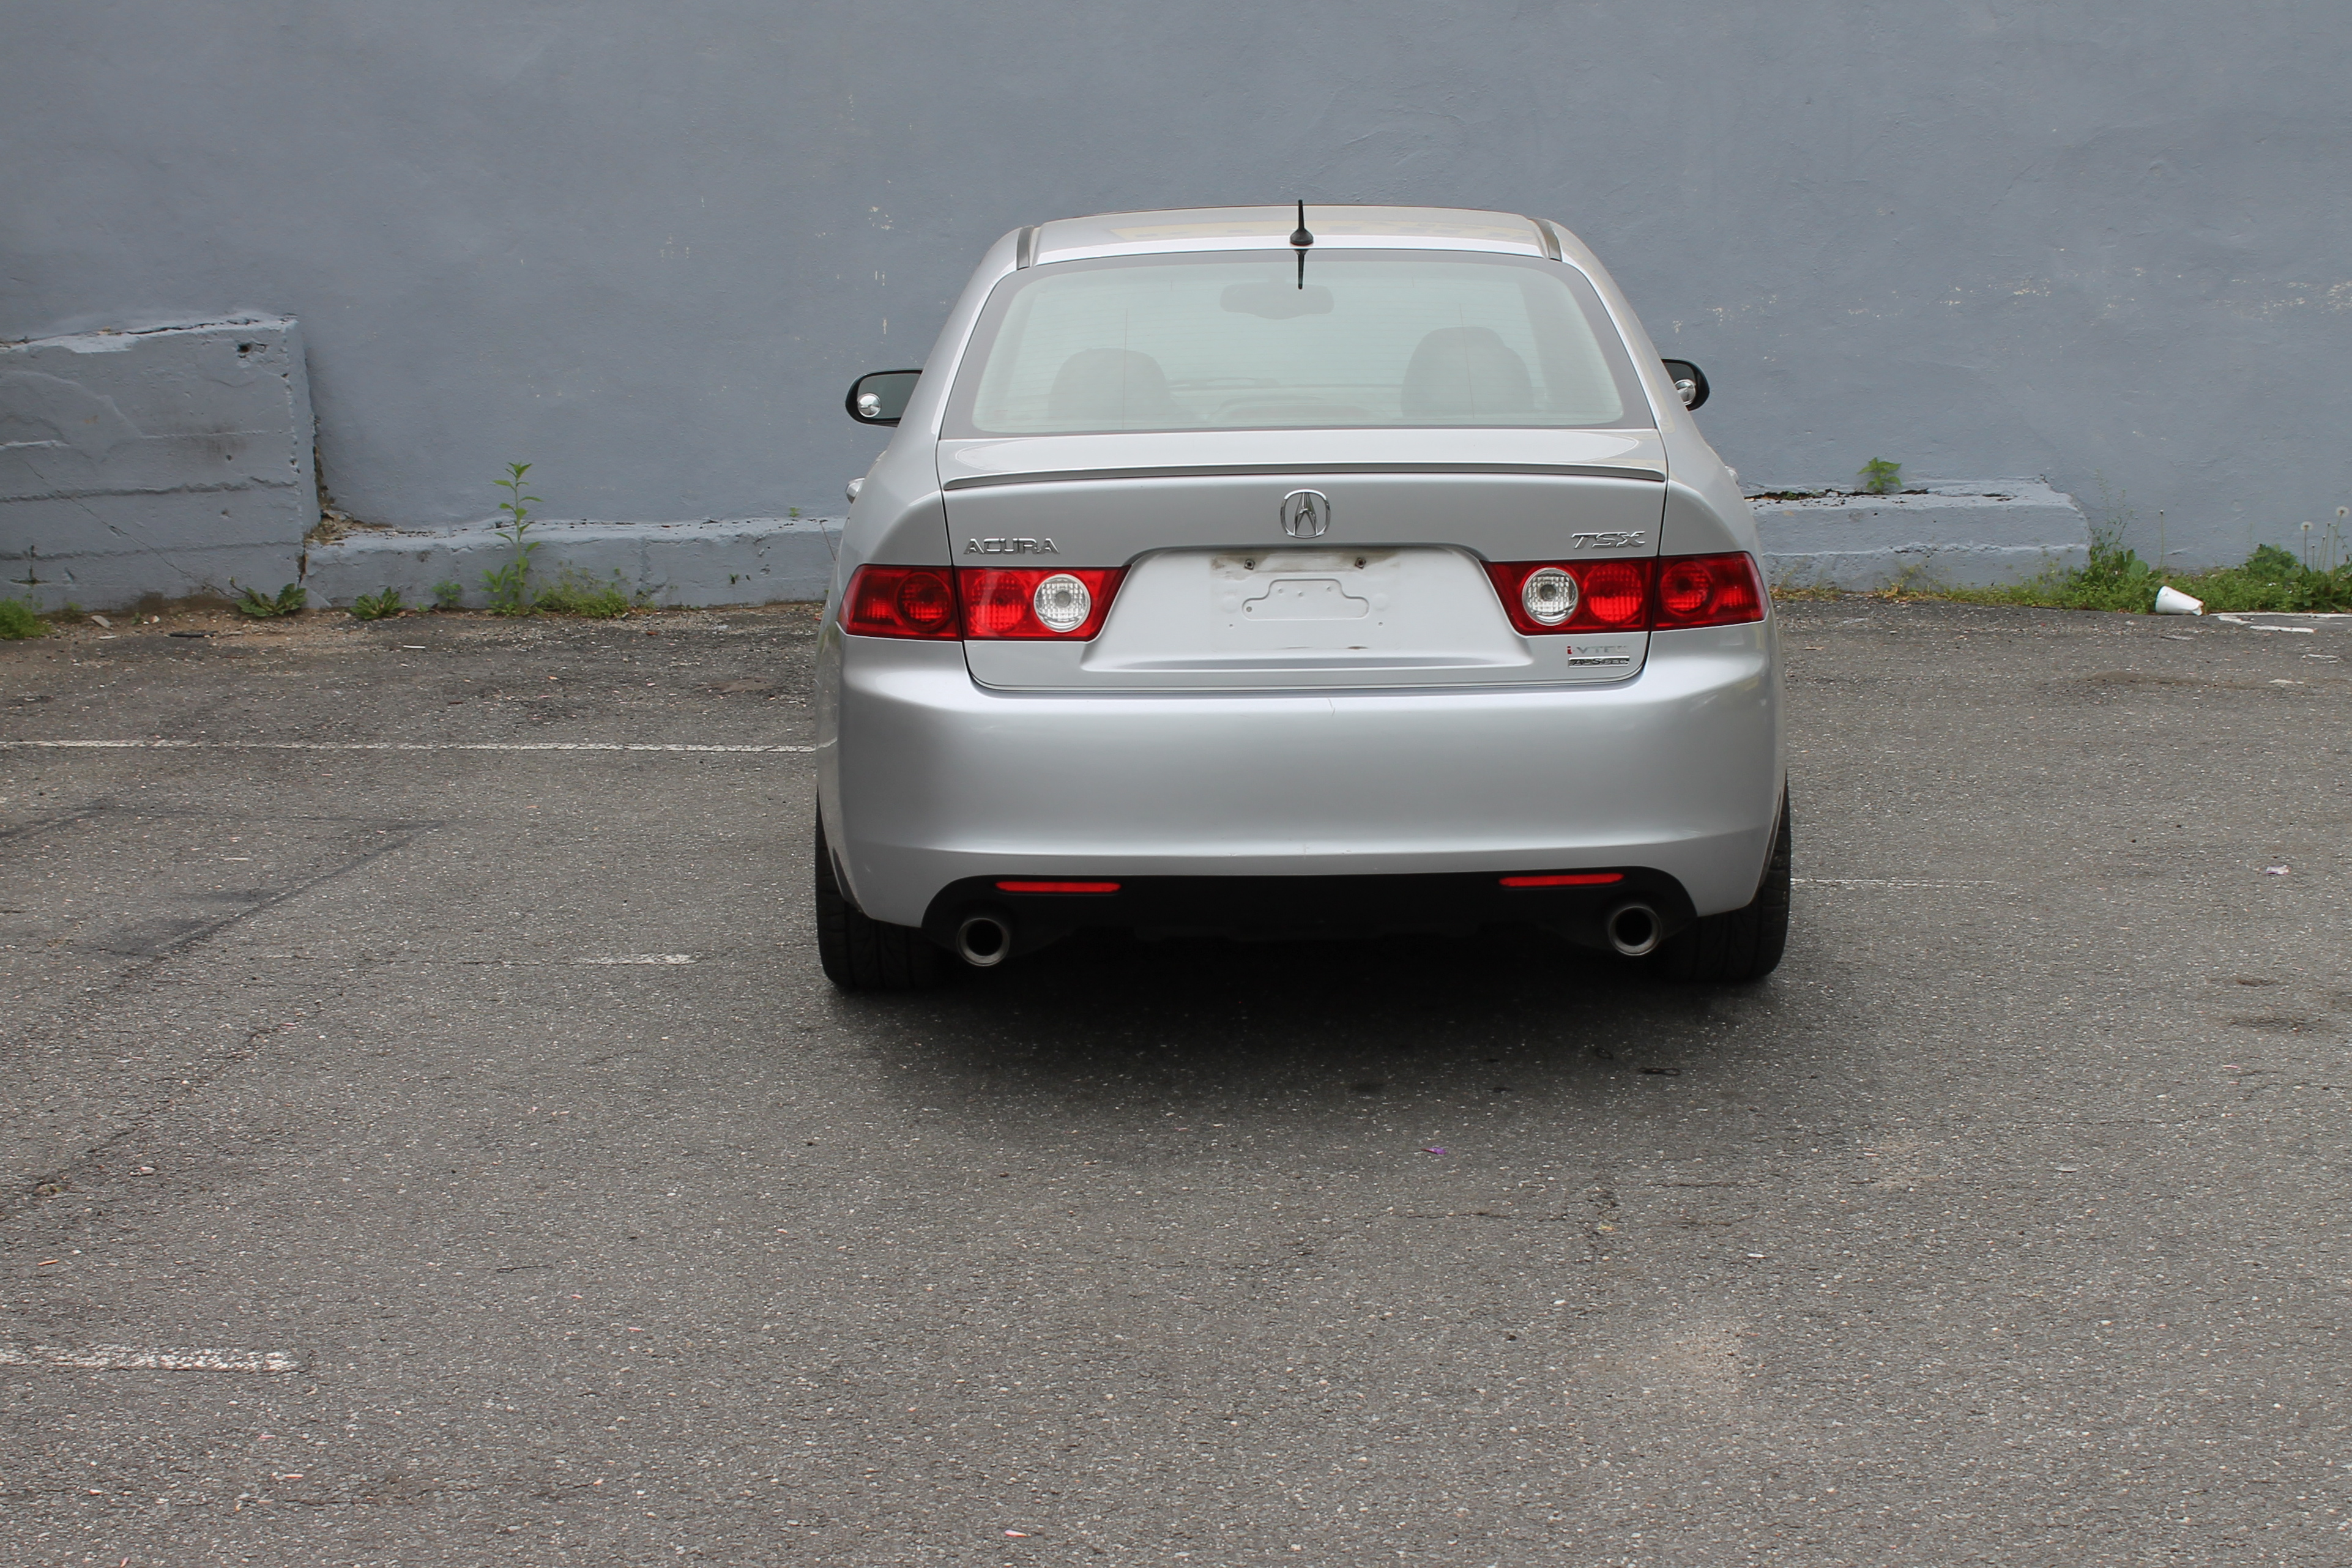 modification at images cardomain photos specs tsx acura slammed ideas original on and with info